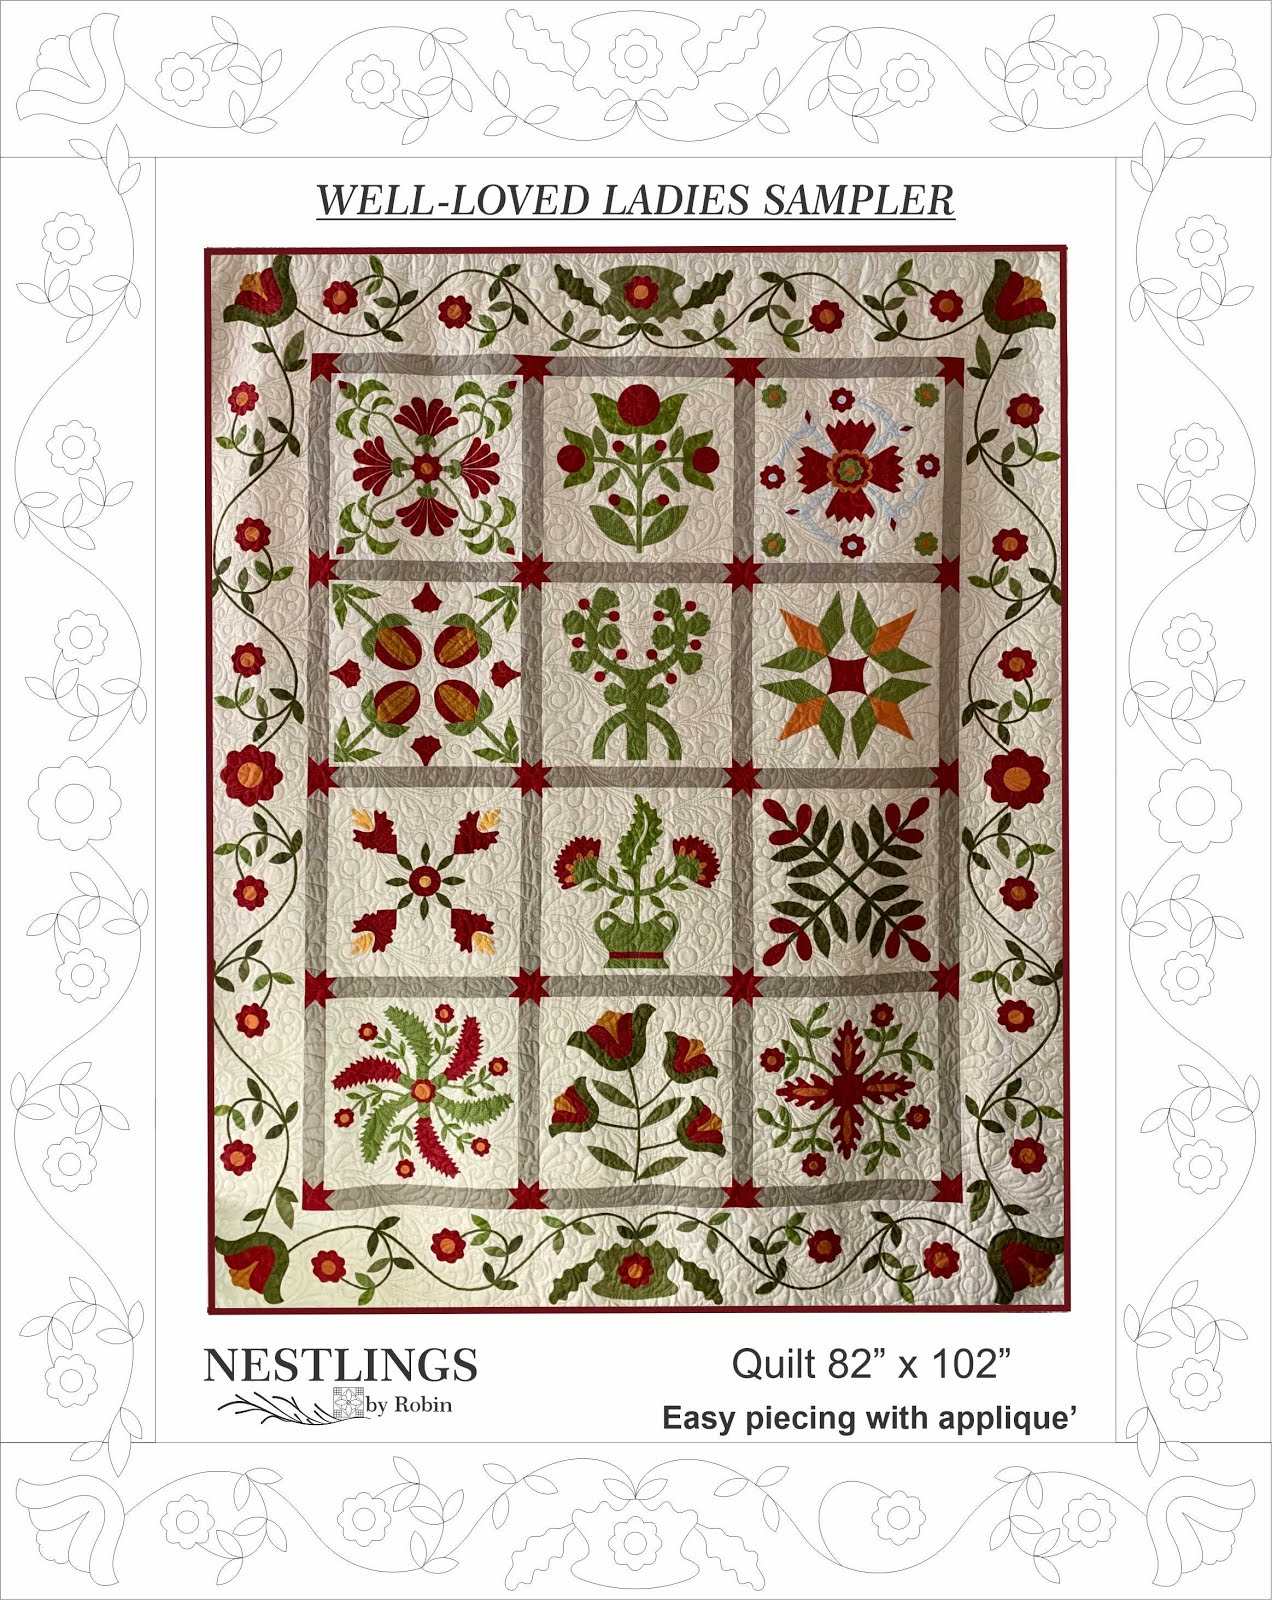 Well-Loved Ladies Sampler